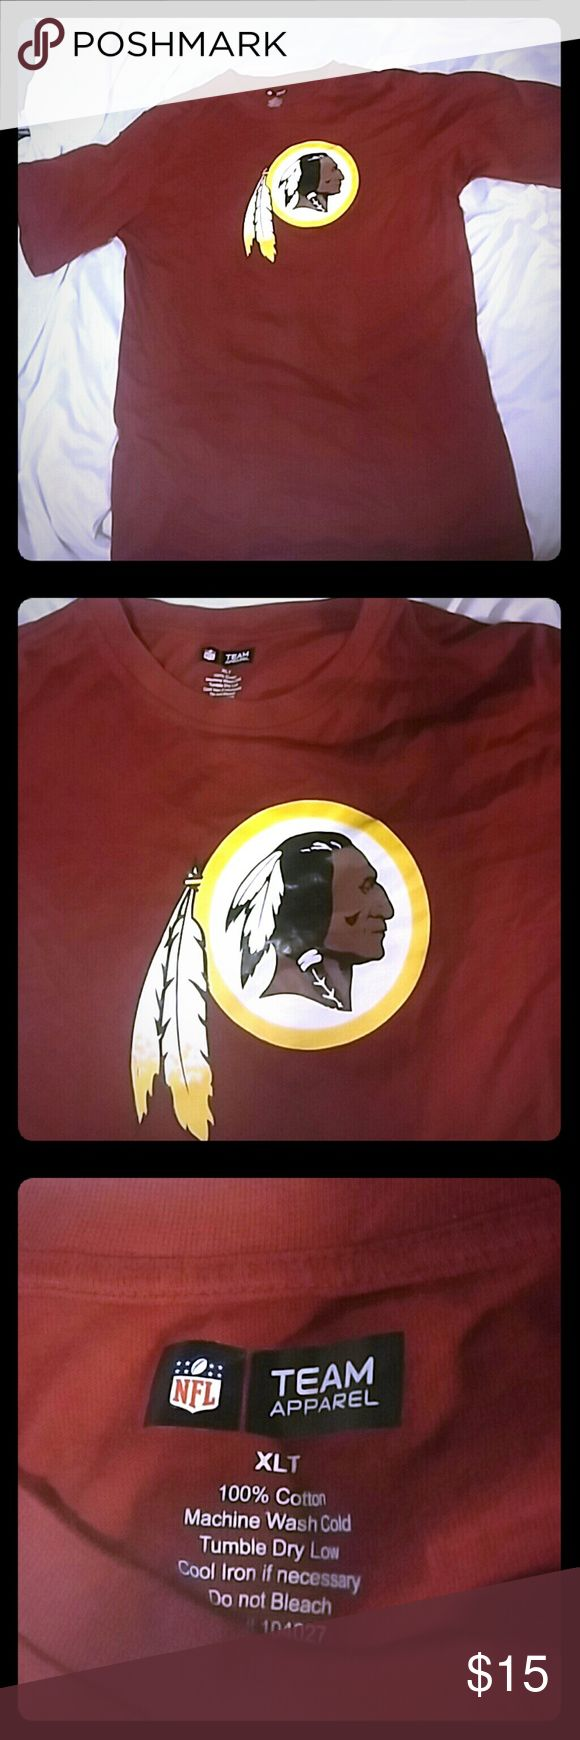 Washington Redskins XLT T shirt Has no name. It's just a Redskins Shirt. Team Apparel Shirts